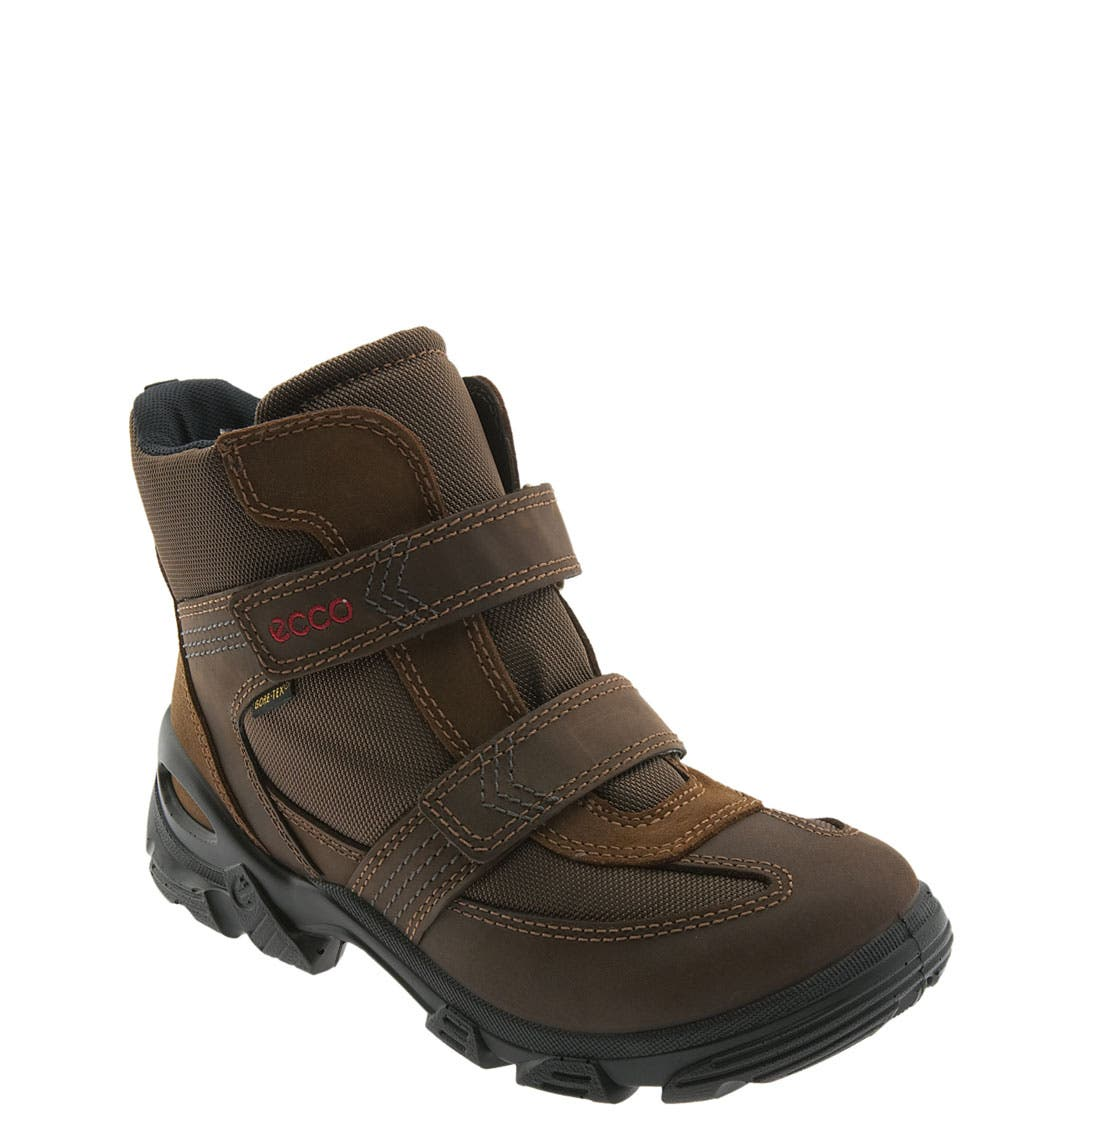 Alternate Image 1 Selected - ECCO 'Freeride' Boot (Toddler, Little Kid & Big Kid)